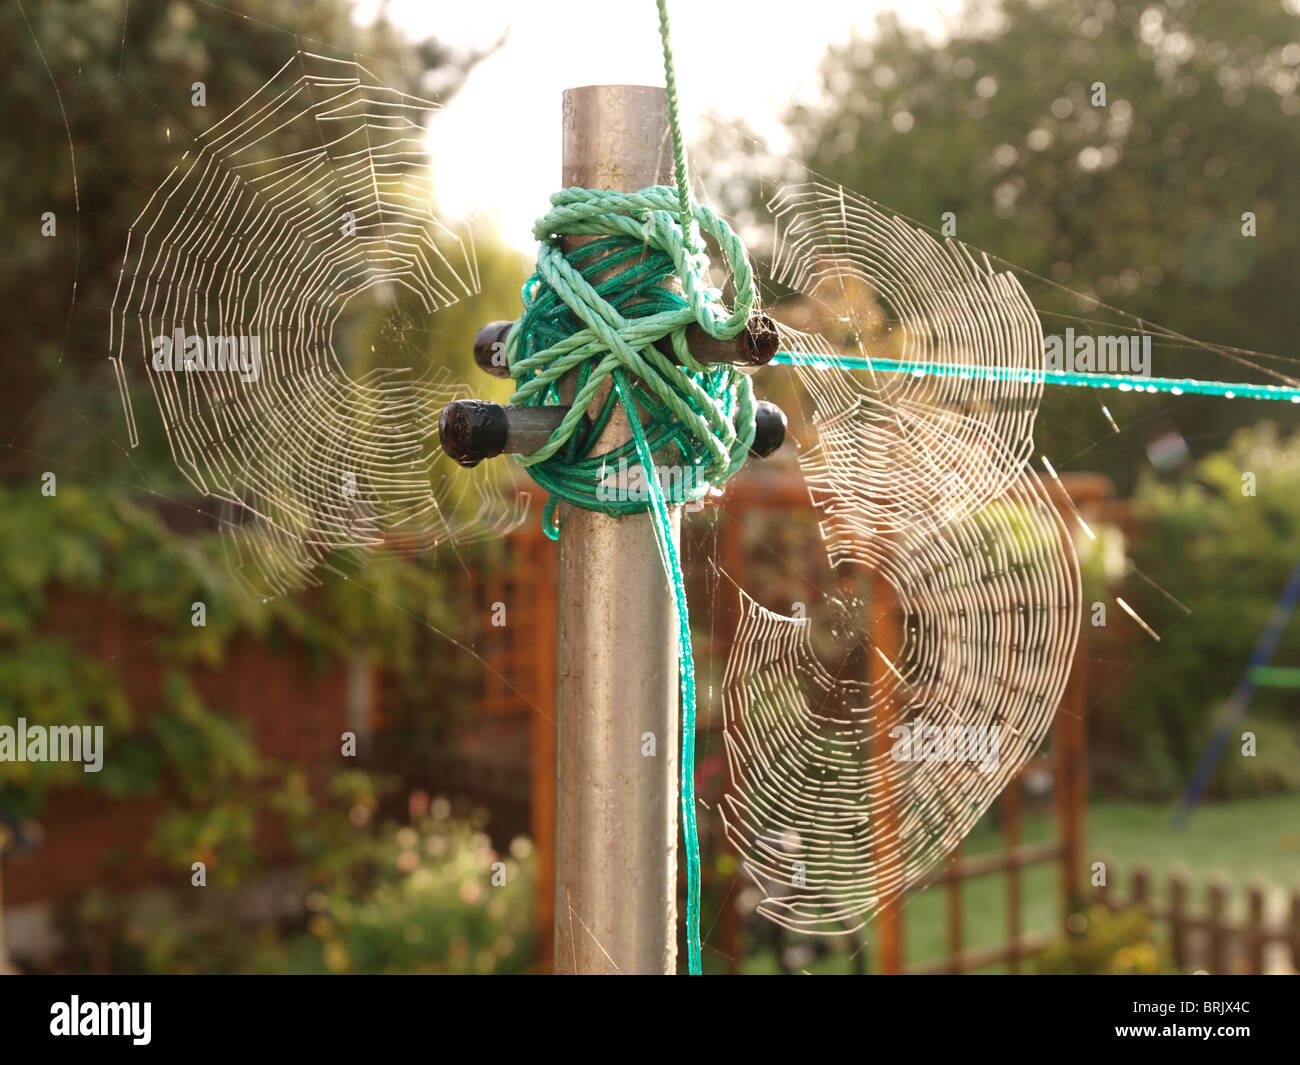 group of spiders webs after rain early morning woven around lineprop - Stock Image